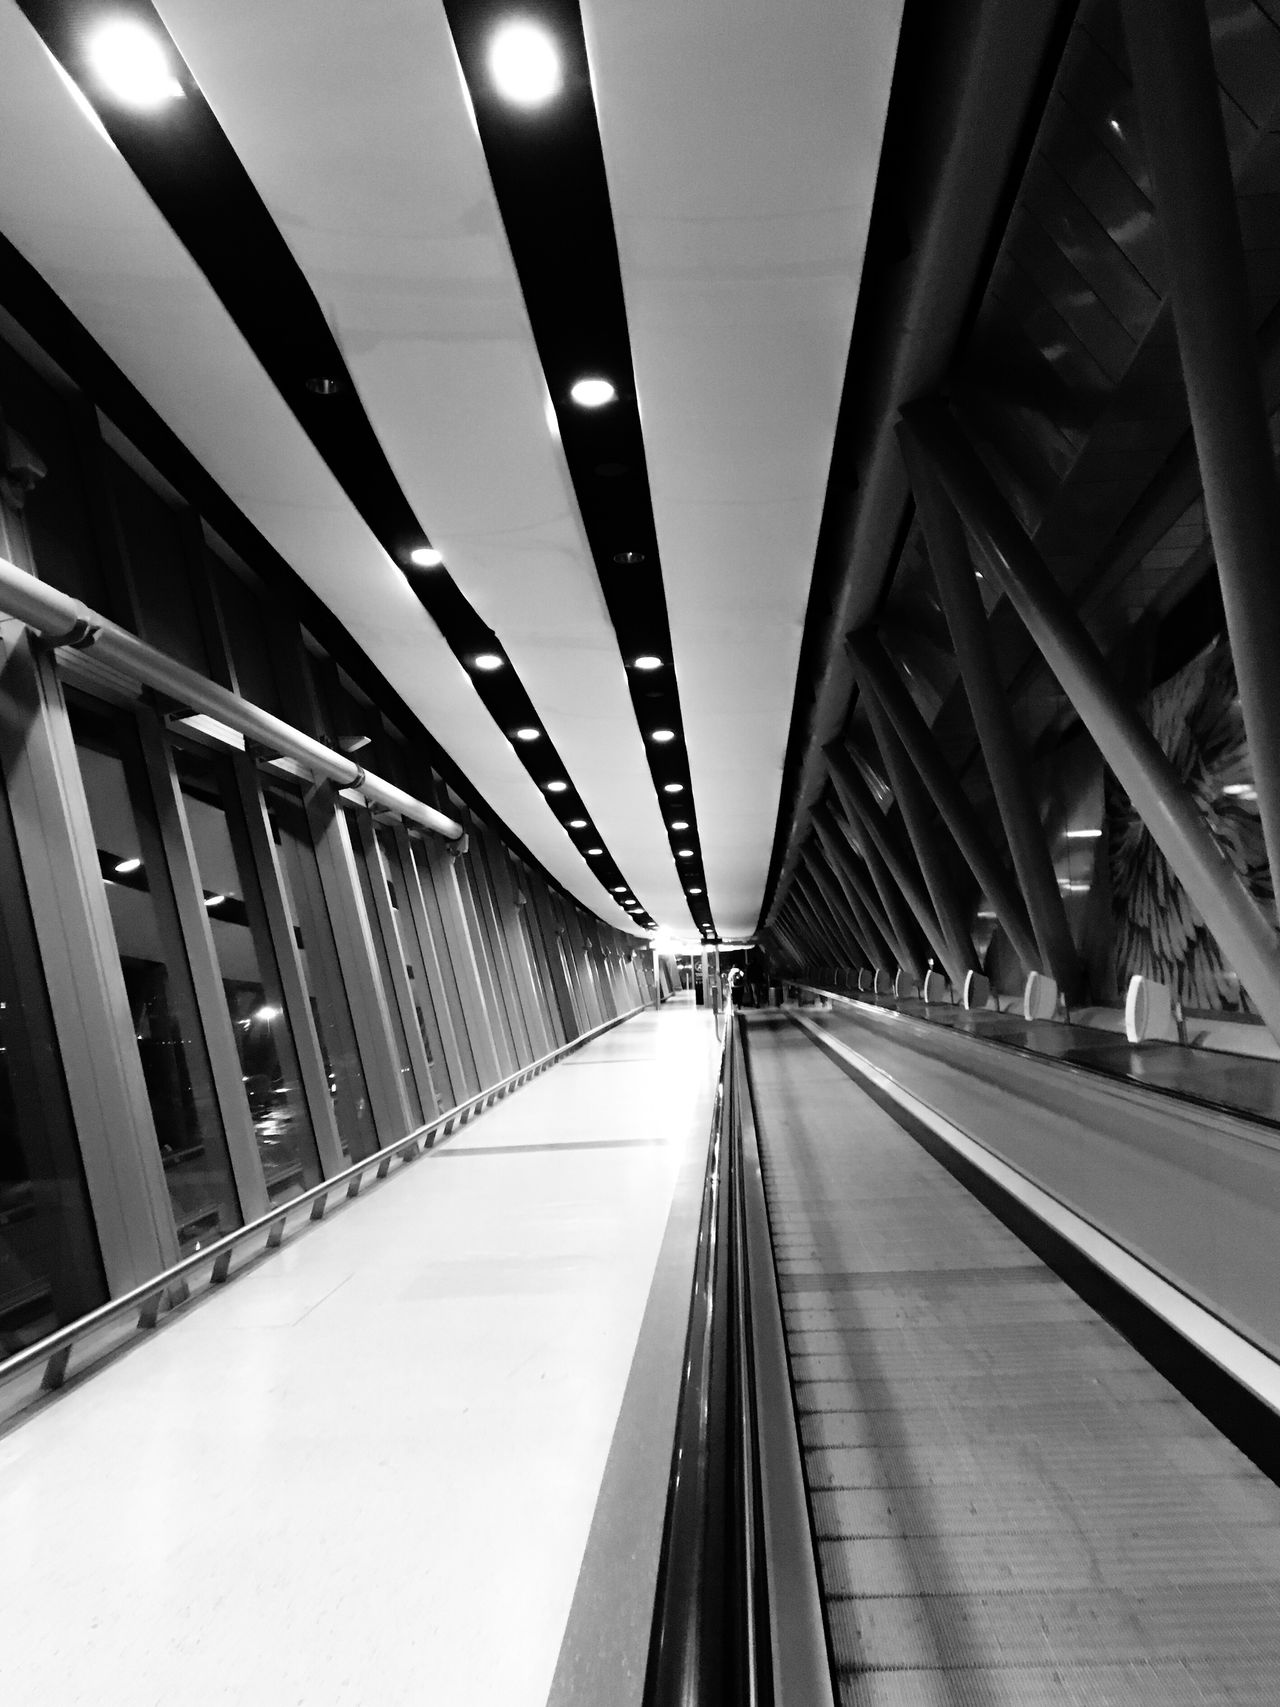 Long way ahead Illuminated Ceiling The Way Forward Architecture Built Structure Indoors  Transportation Connection Real People Modern Futuristic Moving Walkway  Airport Gatwick Airport Gatwick North Terminal London Black And White Black & White Black And White Photography Black And White Architecture Gatwick Collection IPhoneography